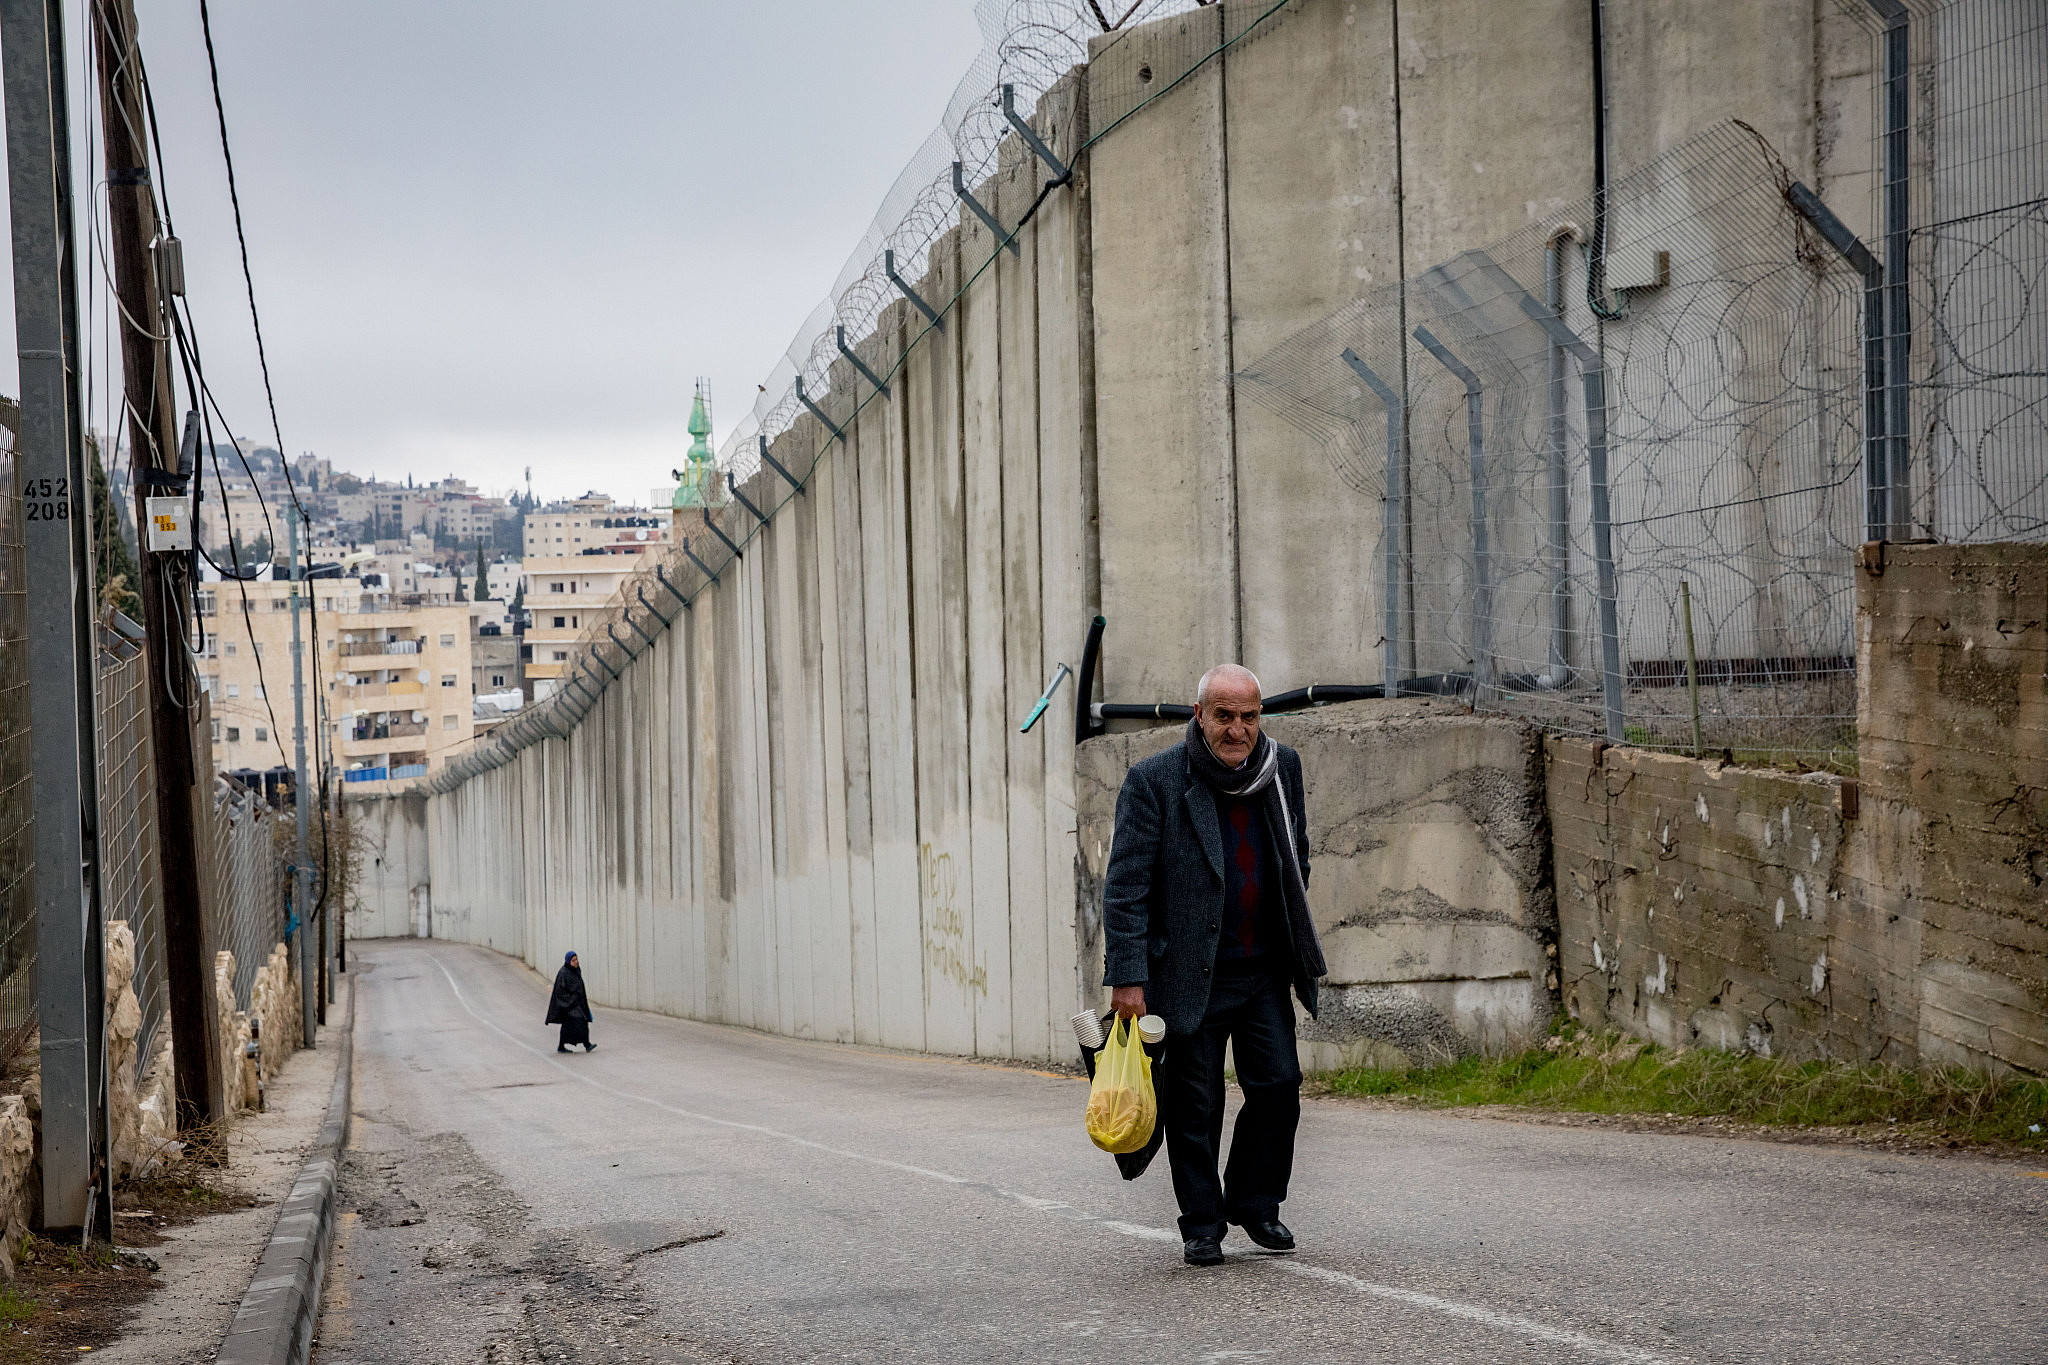 Palestinians walk past a section of the separation wall in the East Jerusalem village of Abu Dis, February 02, 2020. (Olivier Fitoussi/Flash90)